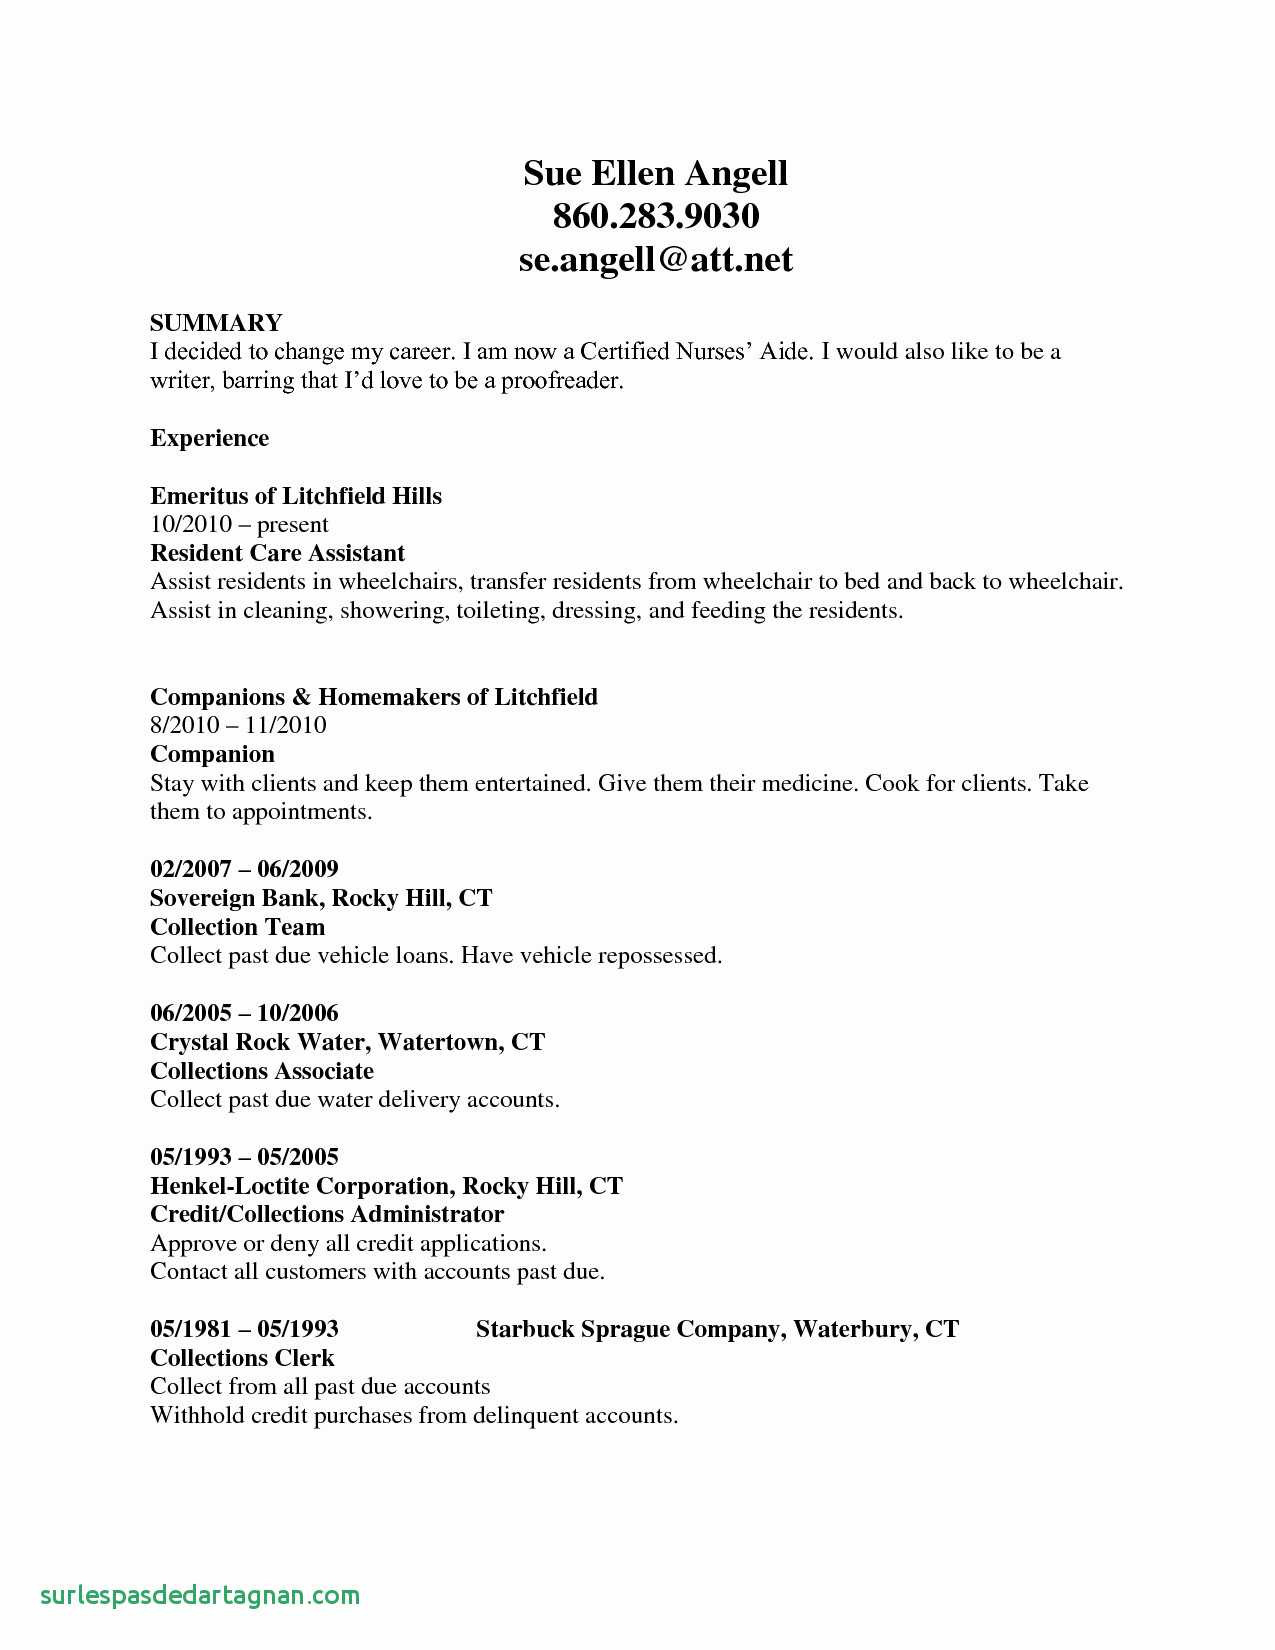 Update My Resume - How to Update My Resume Singular Rn Bsn Resume Awesome Nurse Resume